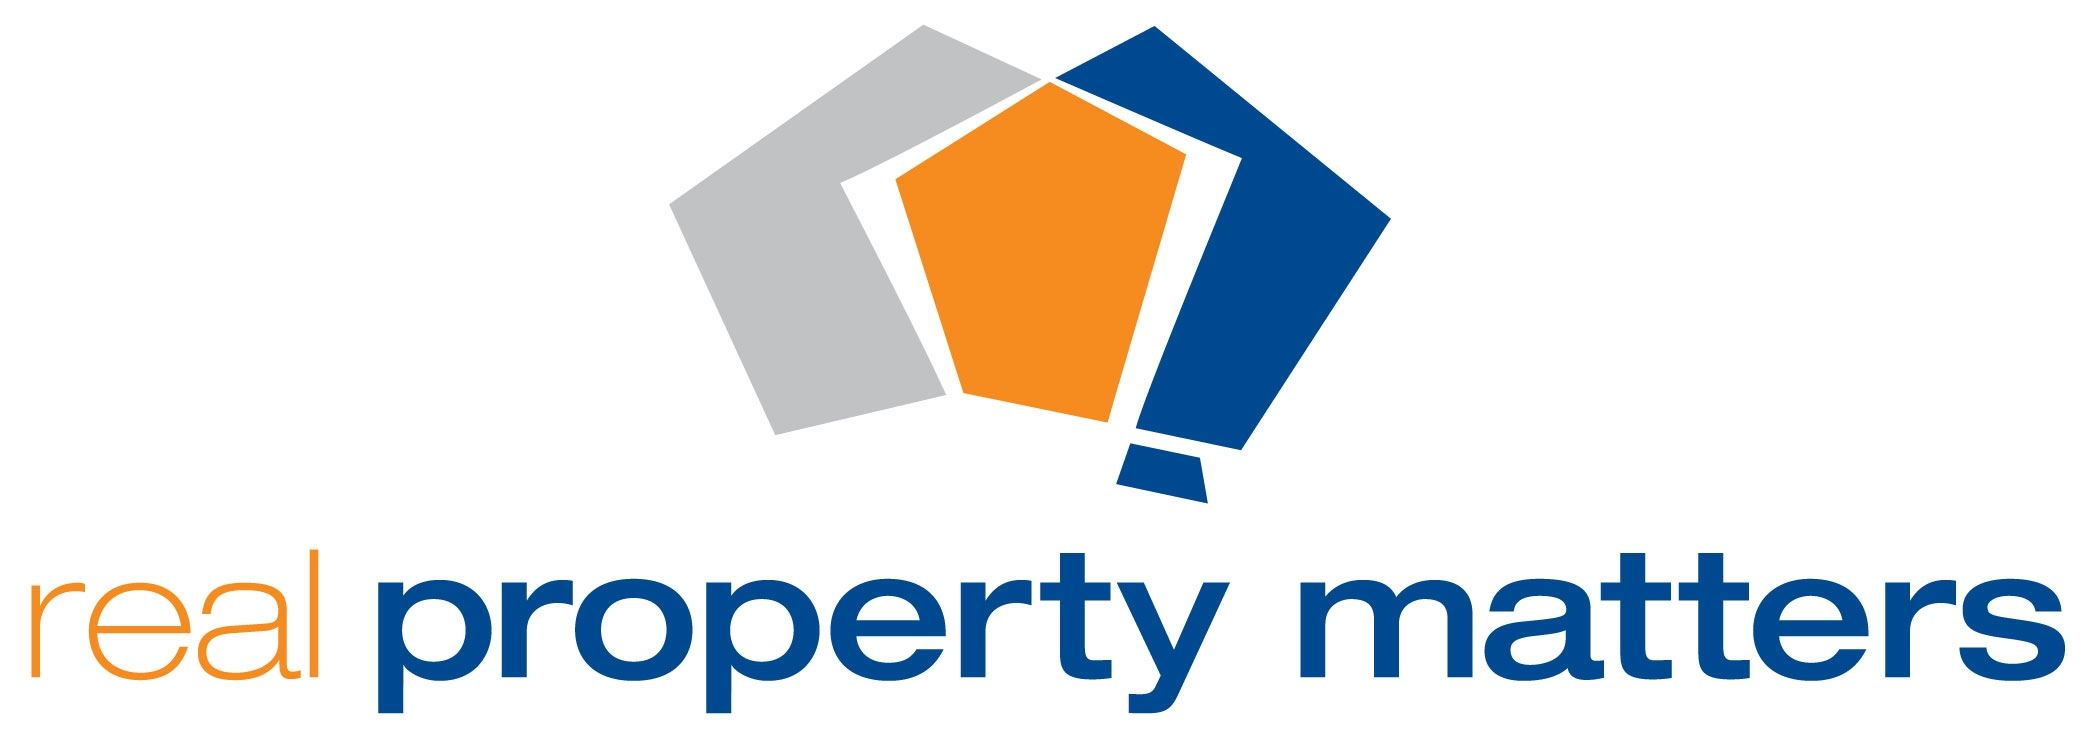 Real Property Matters